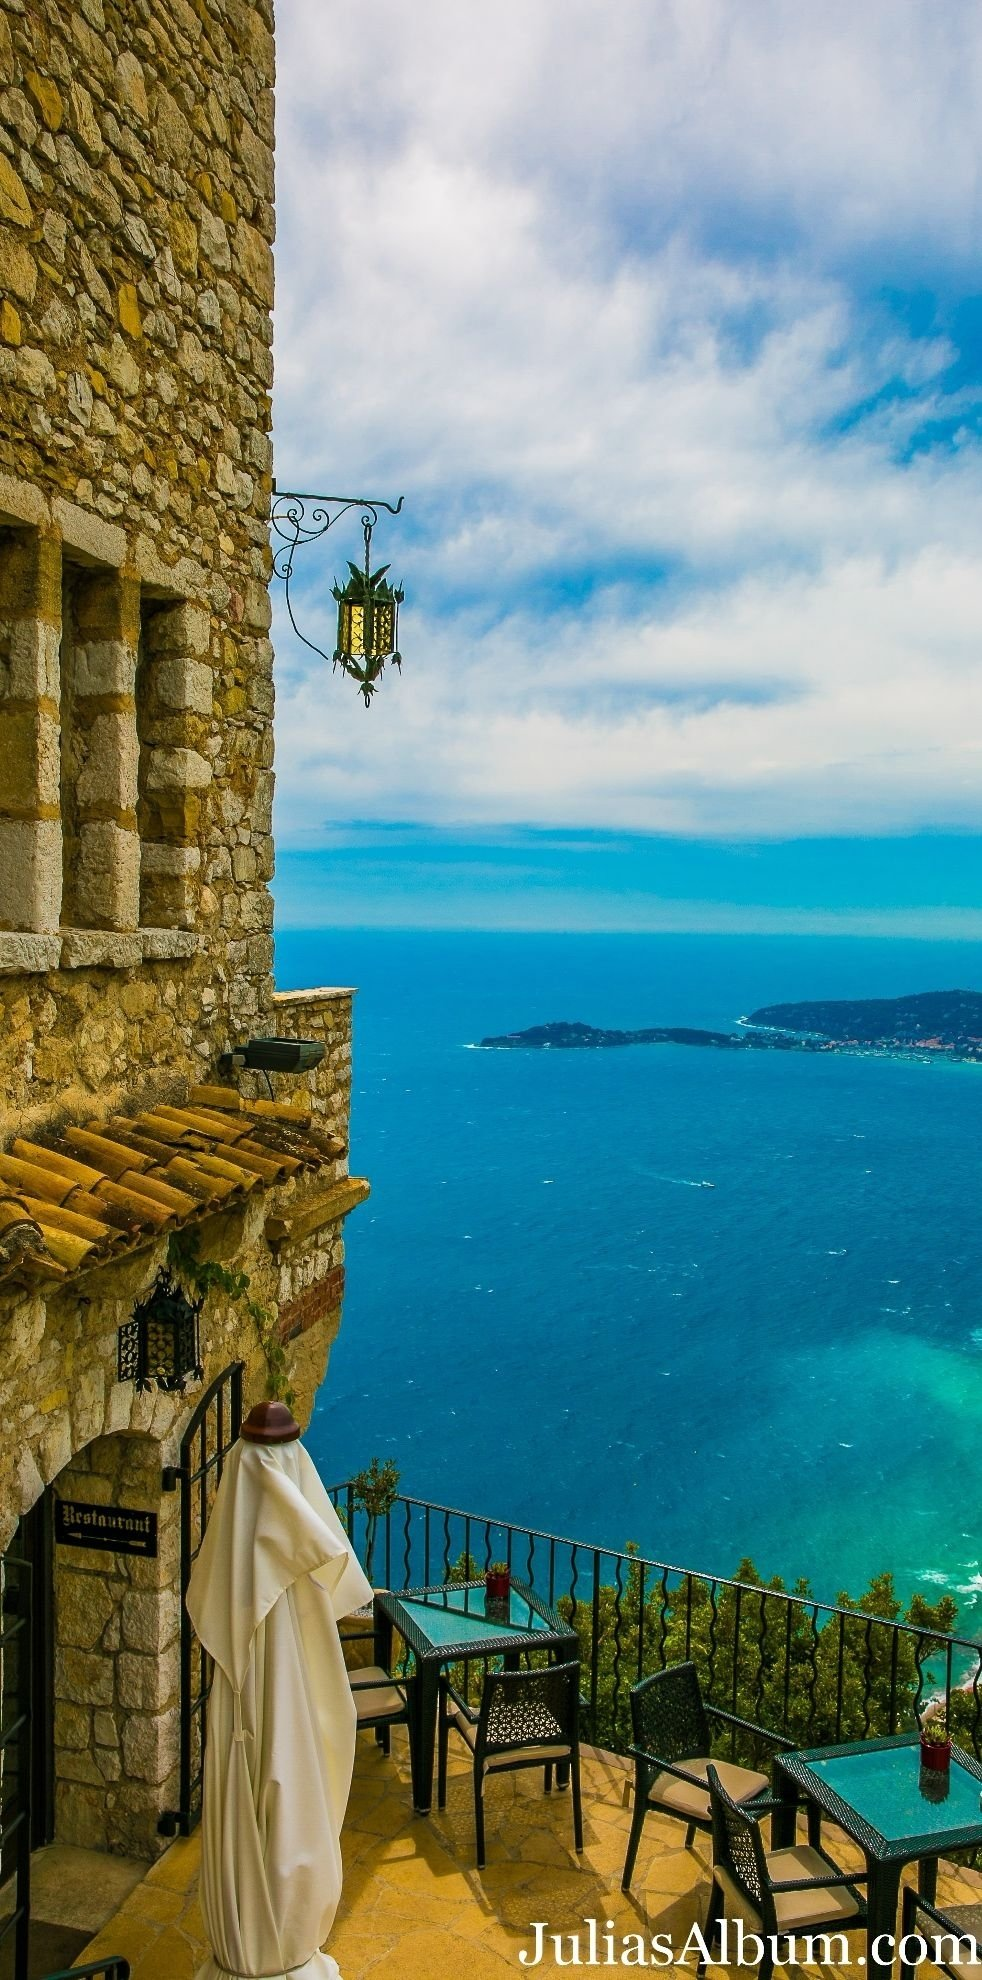 10 Gorgeous Family Vacation Ideas In The South hilltop medieval village of eze in the south of france between